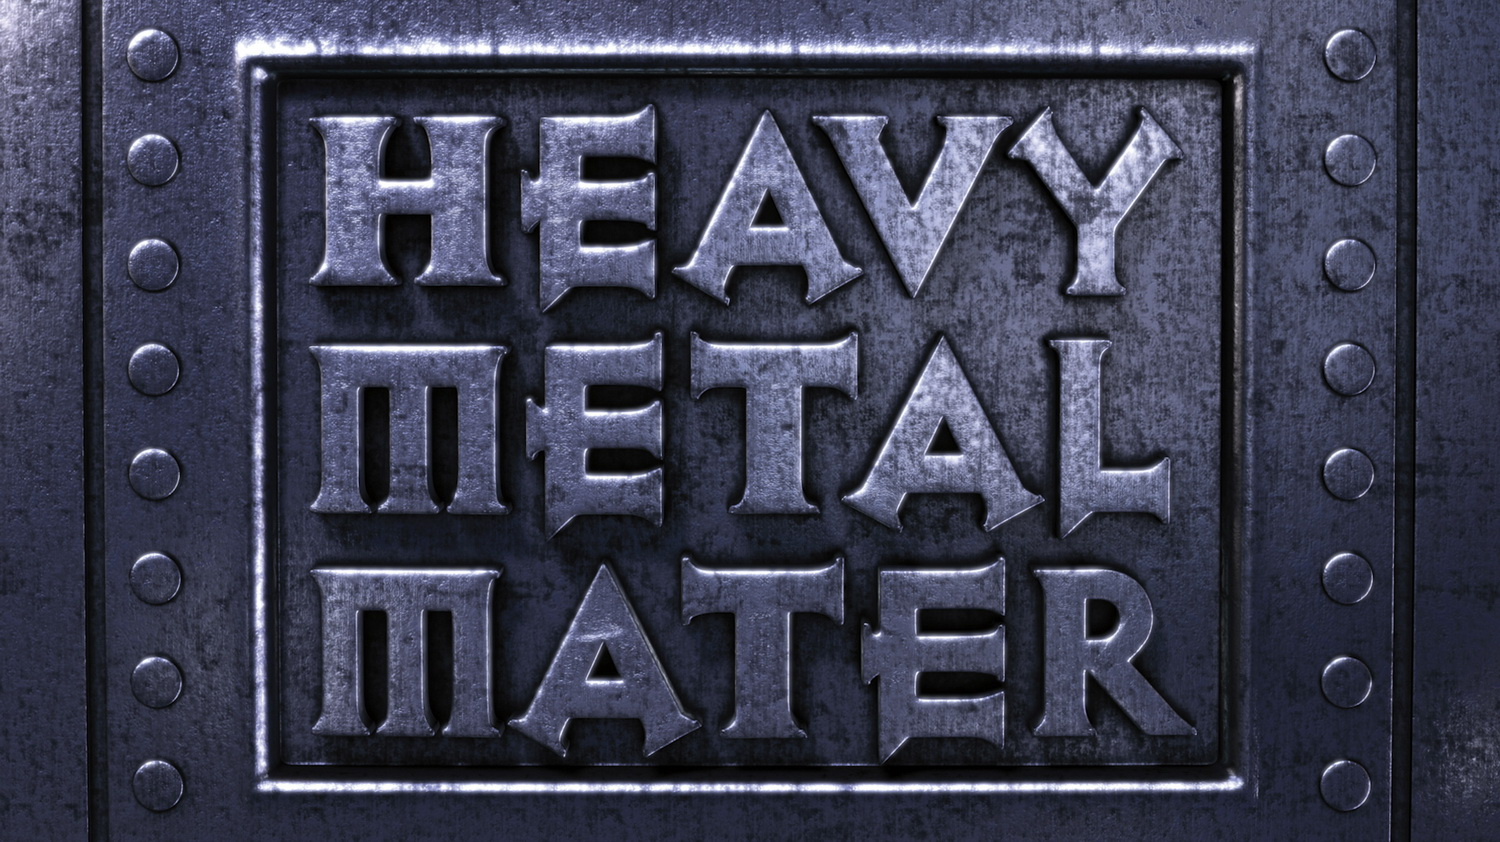 Heavy metal chat is it a dating site